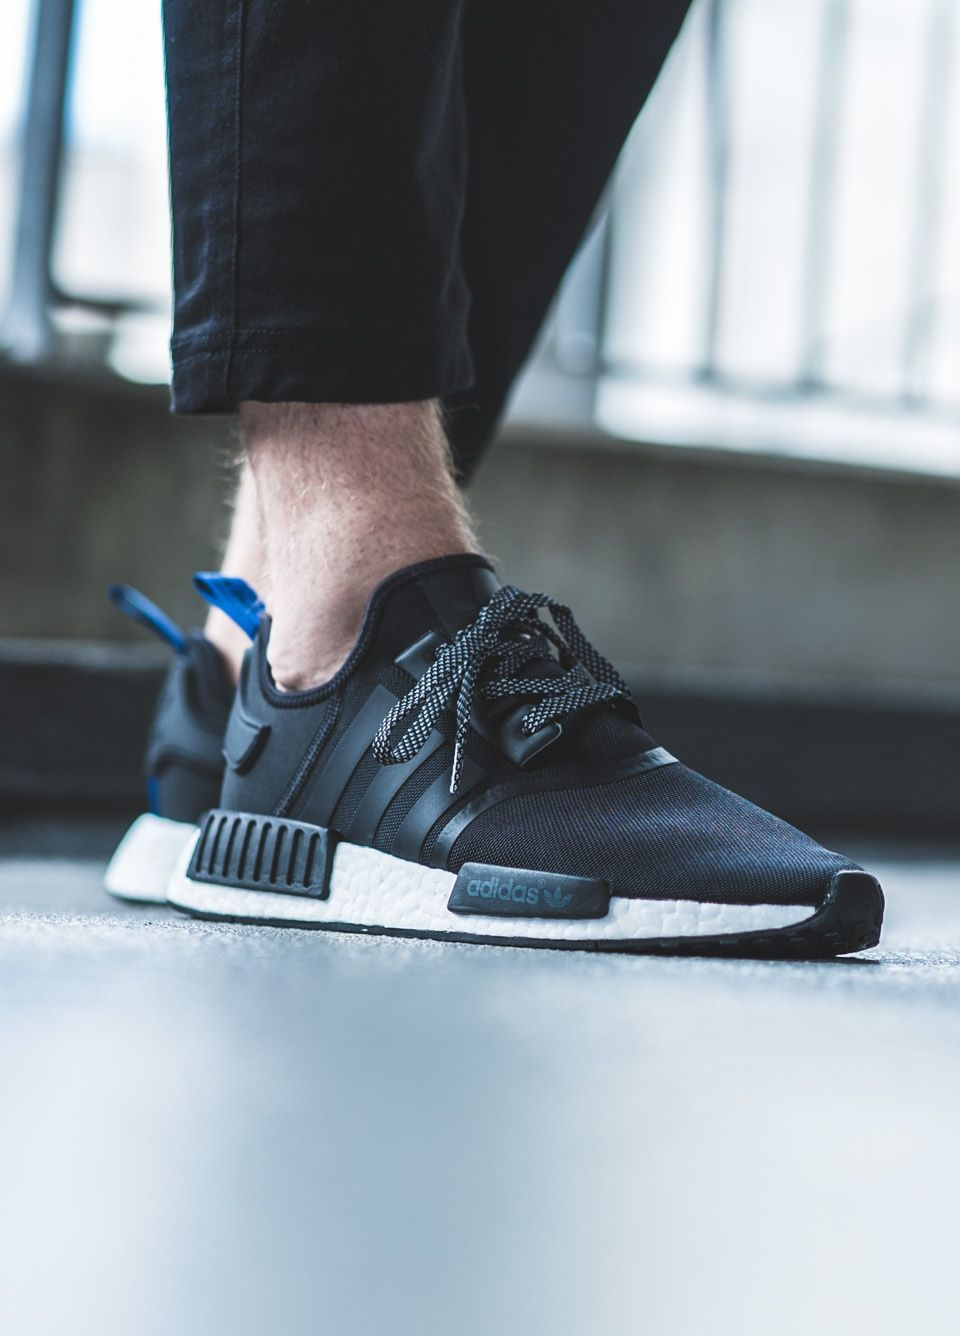 adidas NMD_R1 'black blue' | Shoes in 2019 | Adidas nmd